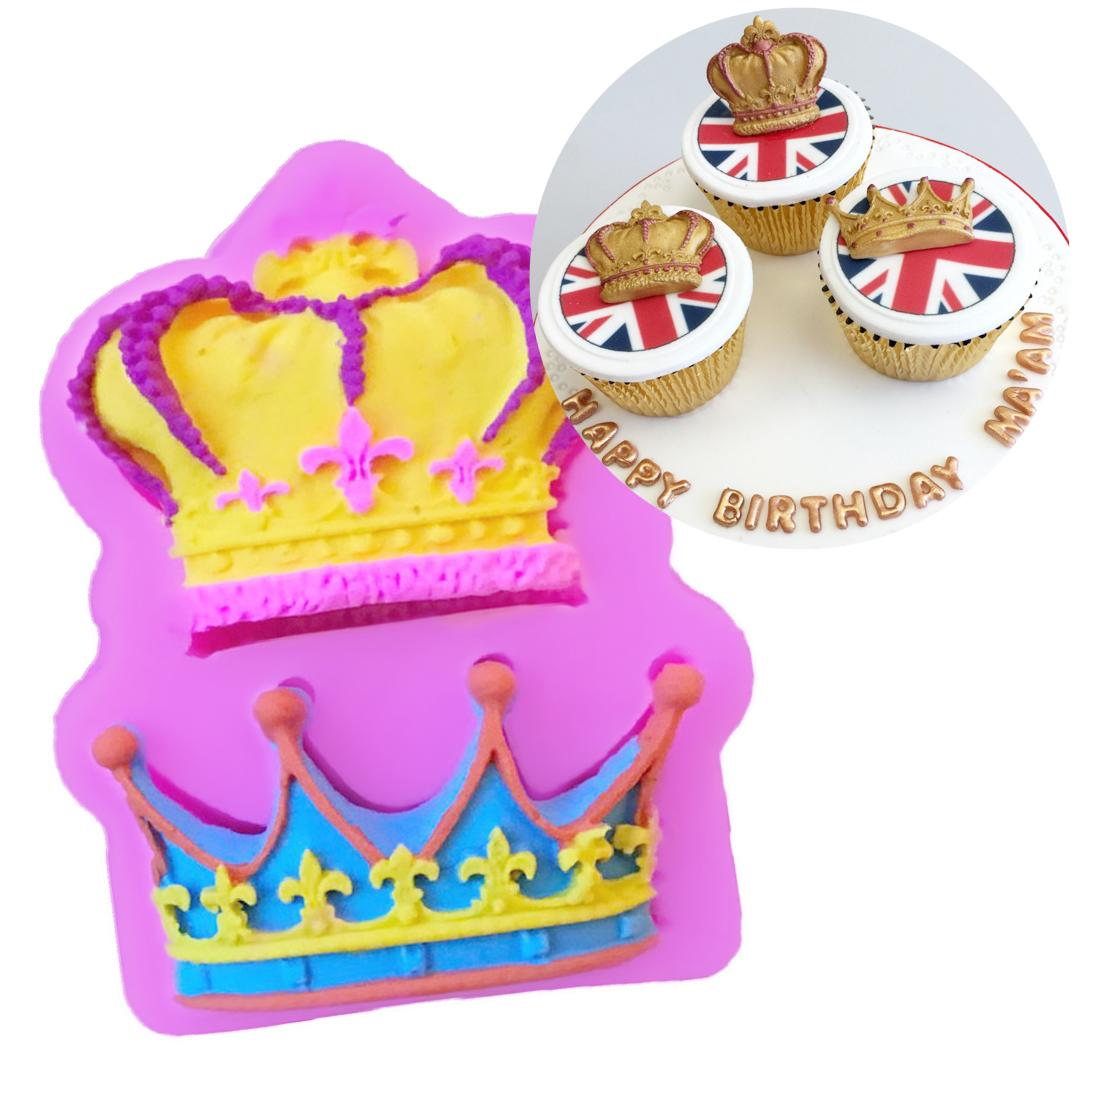 Silicone Mold Princess Crown Shape Baking Pan Cake Decorating Tools Chocolate Soap Mold Cake Stencils Kitchen DIY Tool